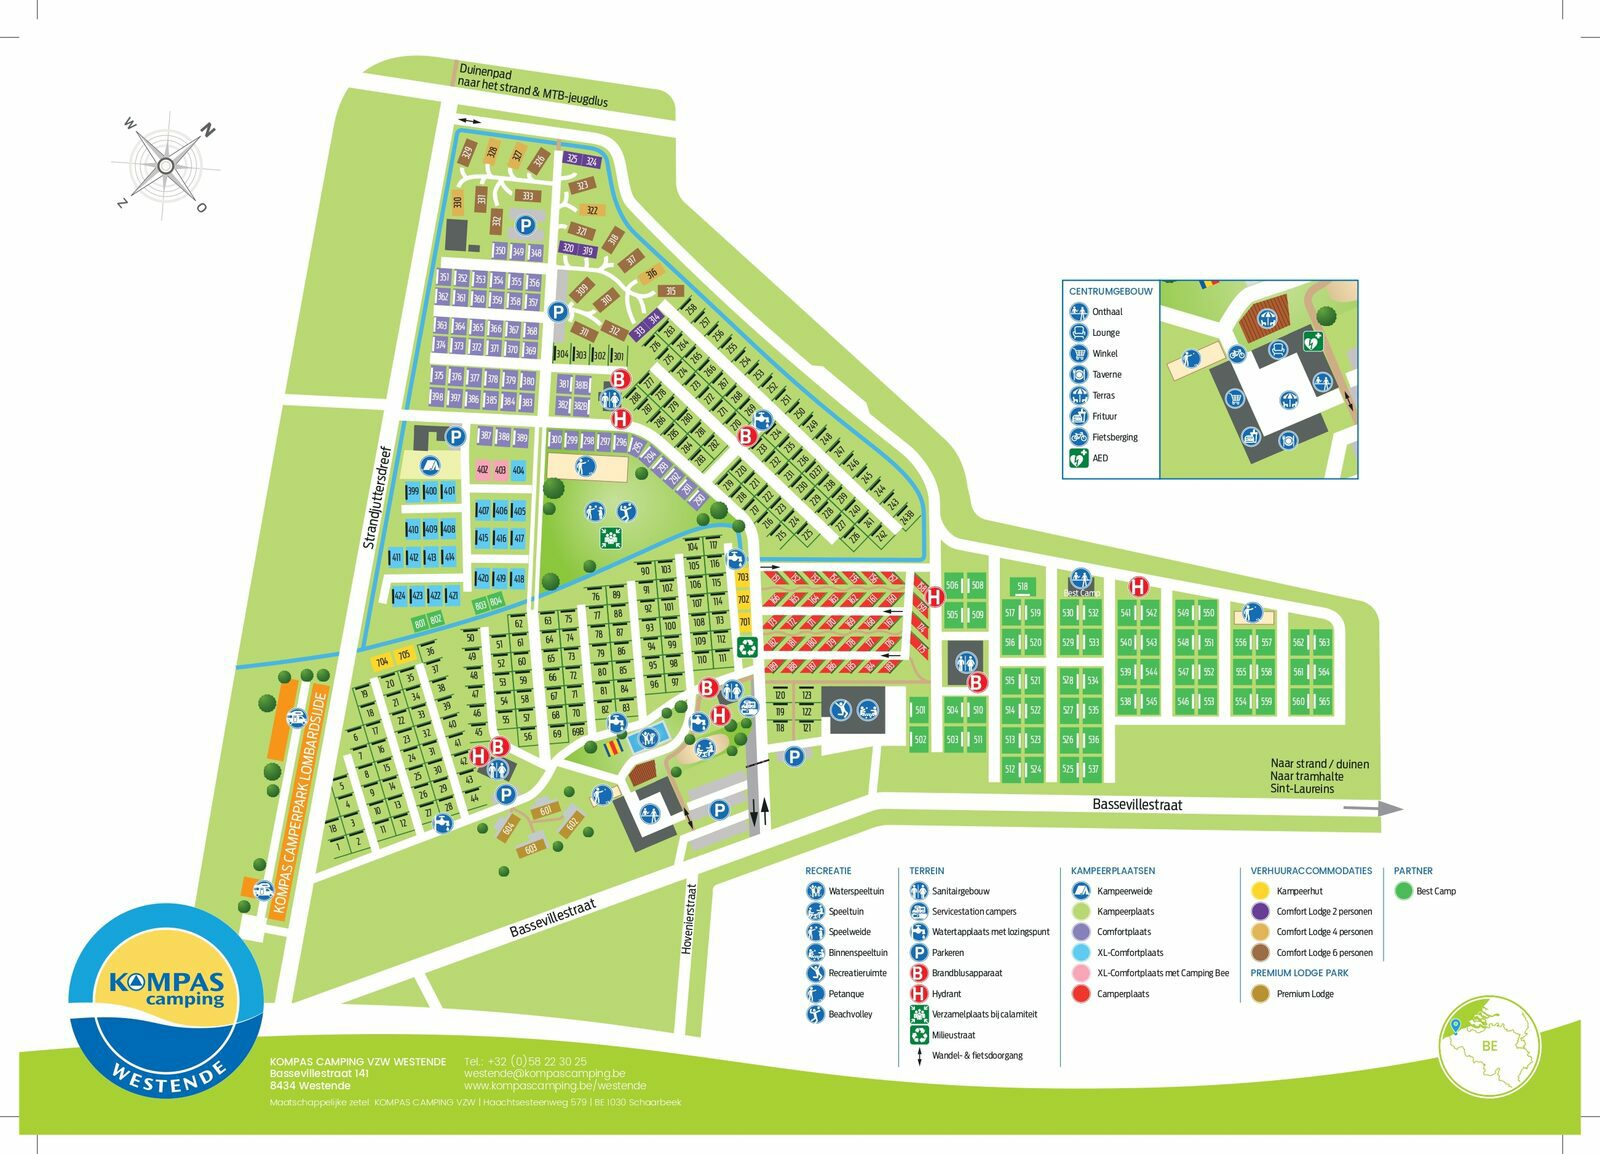 KP_Westende_plattegrond_2021_new_page-0001_e31002c8-e4aa-4d13-86bc-2a7db5110d21.jpg